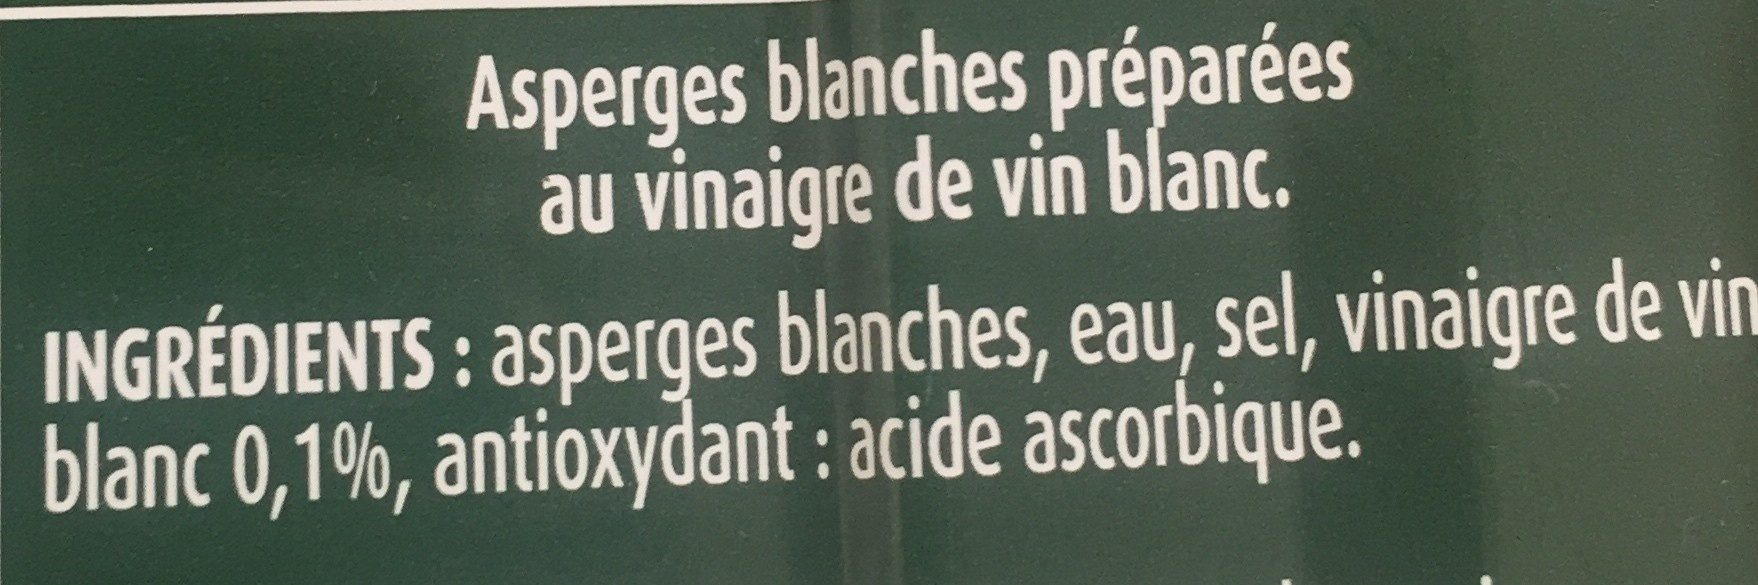 Asperges blanches - Ingredients - fr